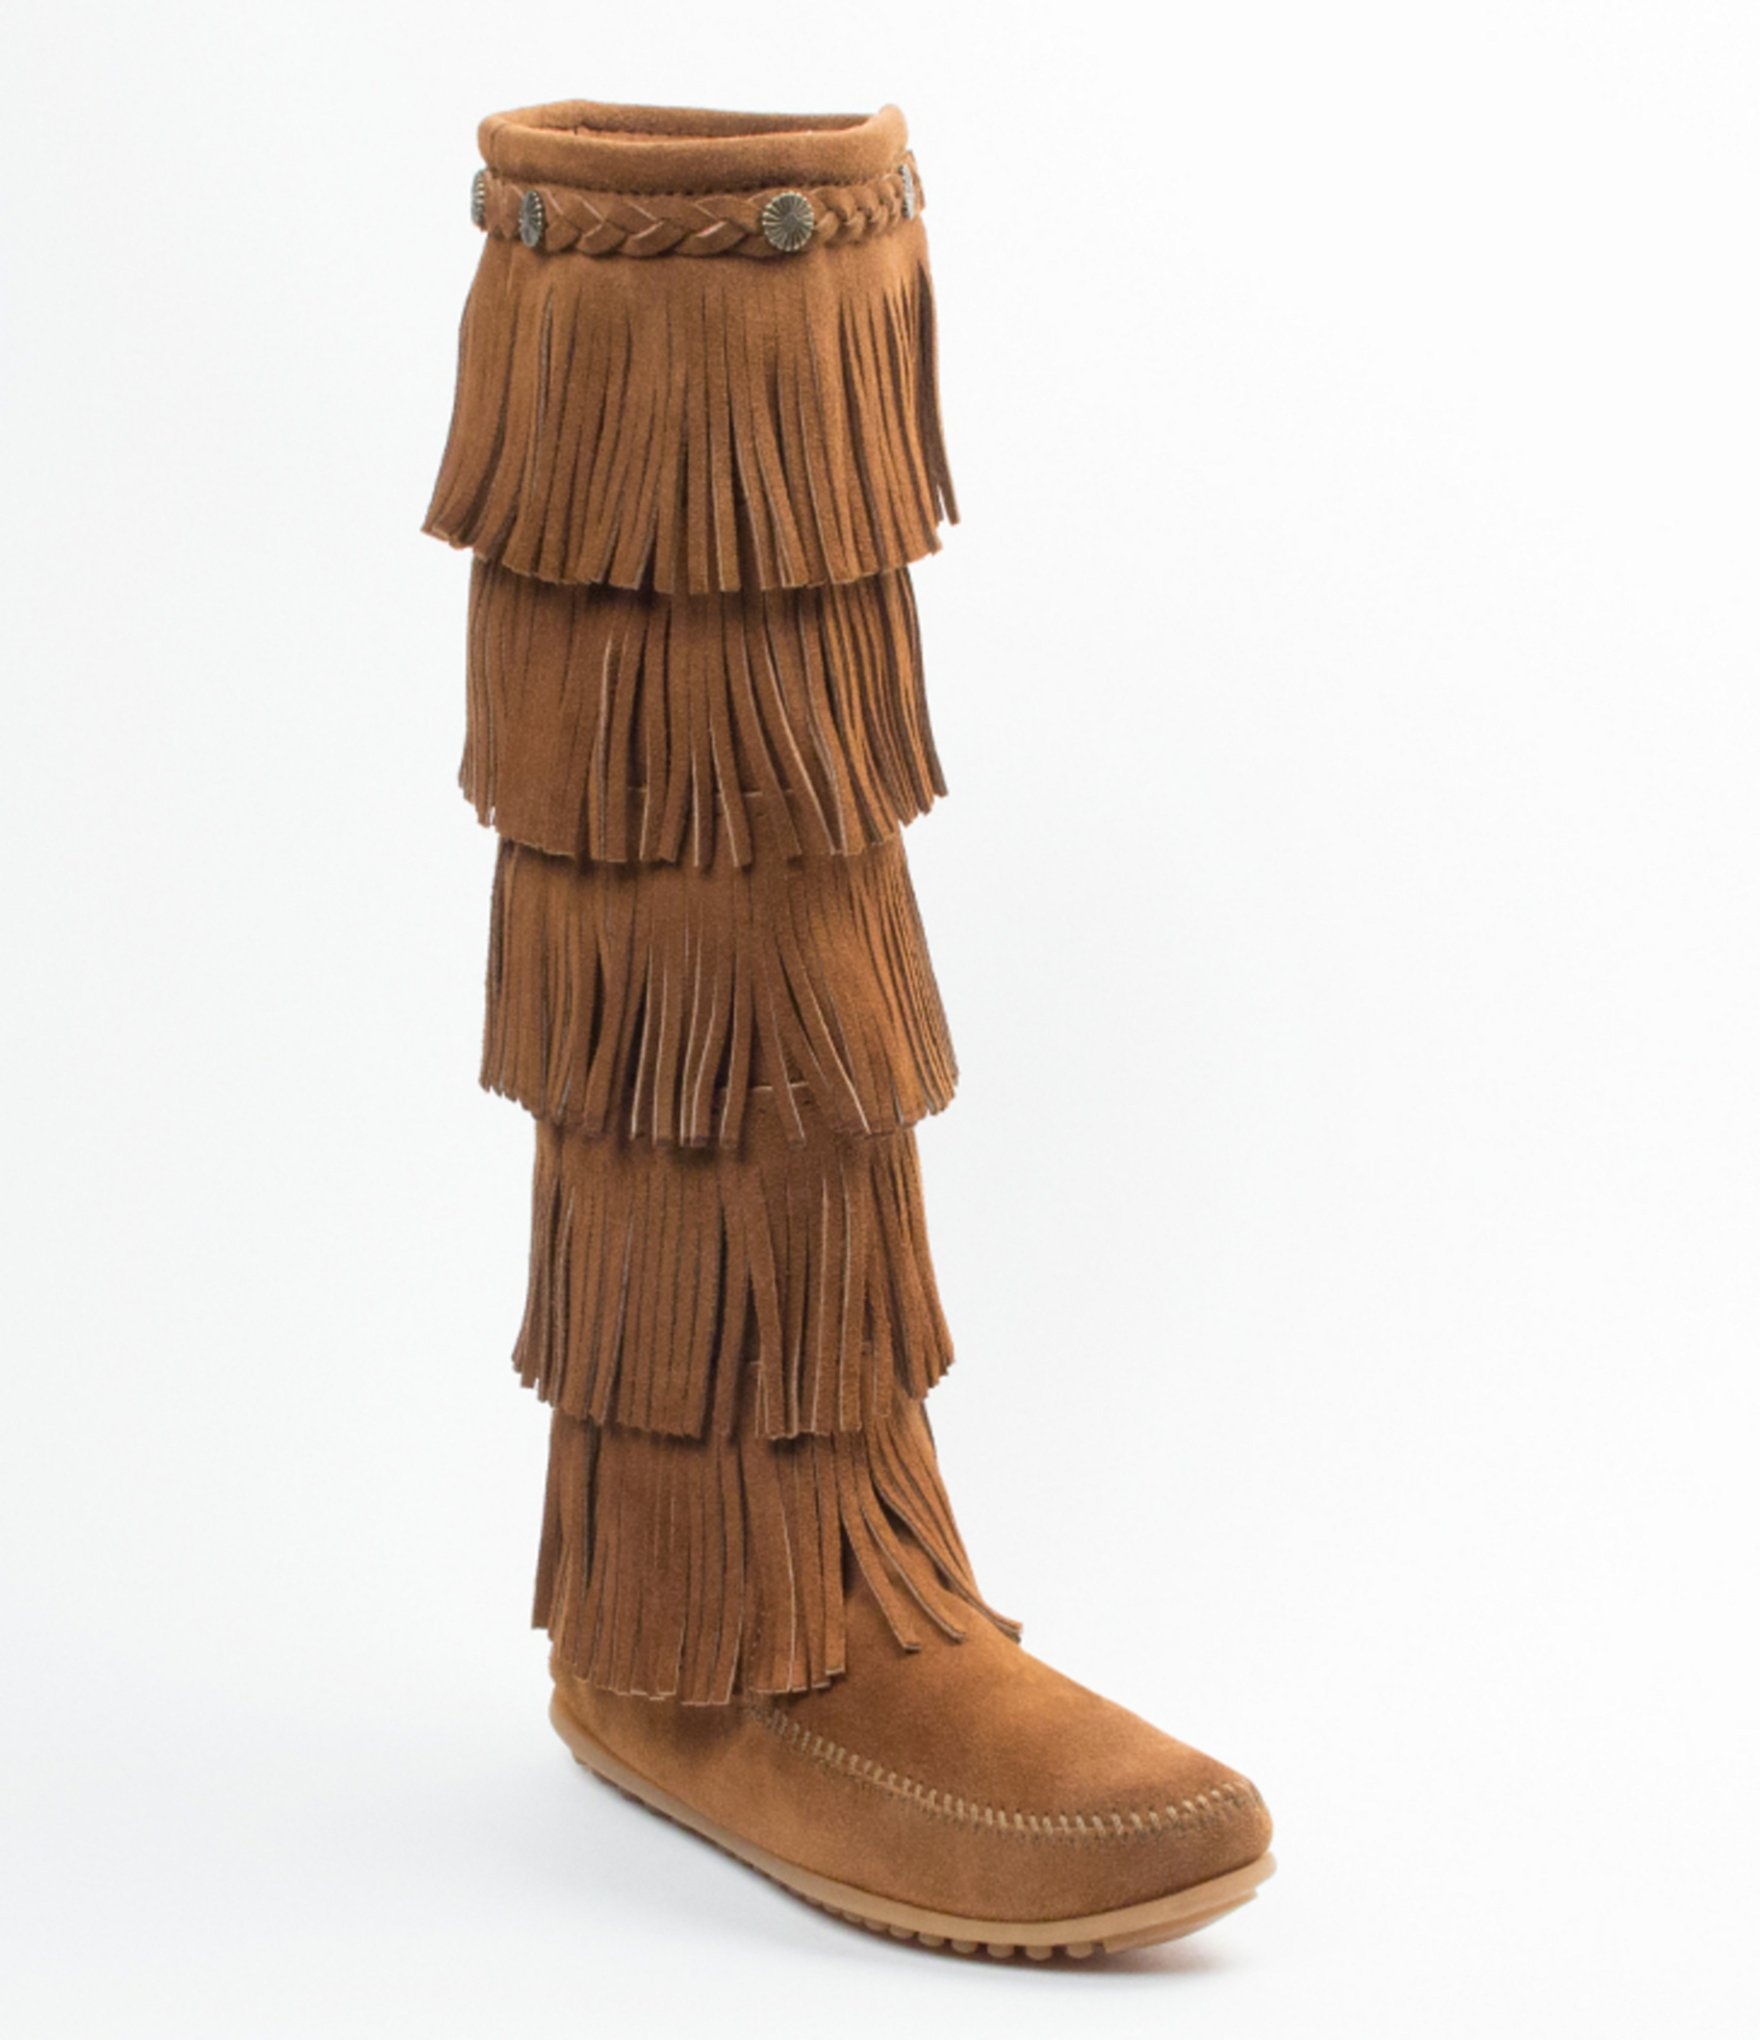 The right dressing to have with the fringe boots